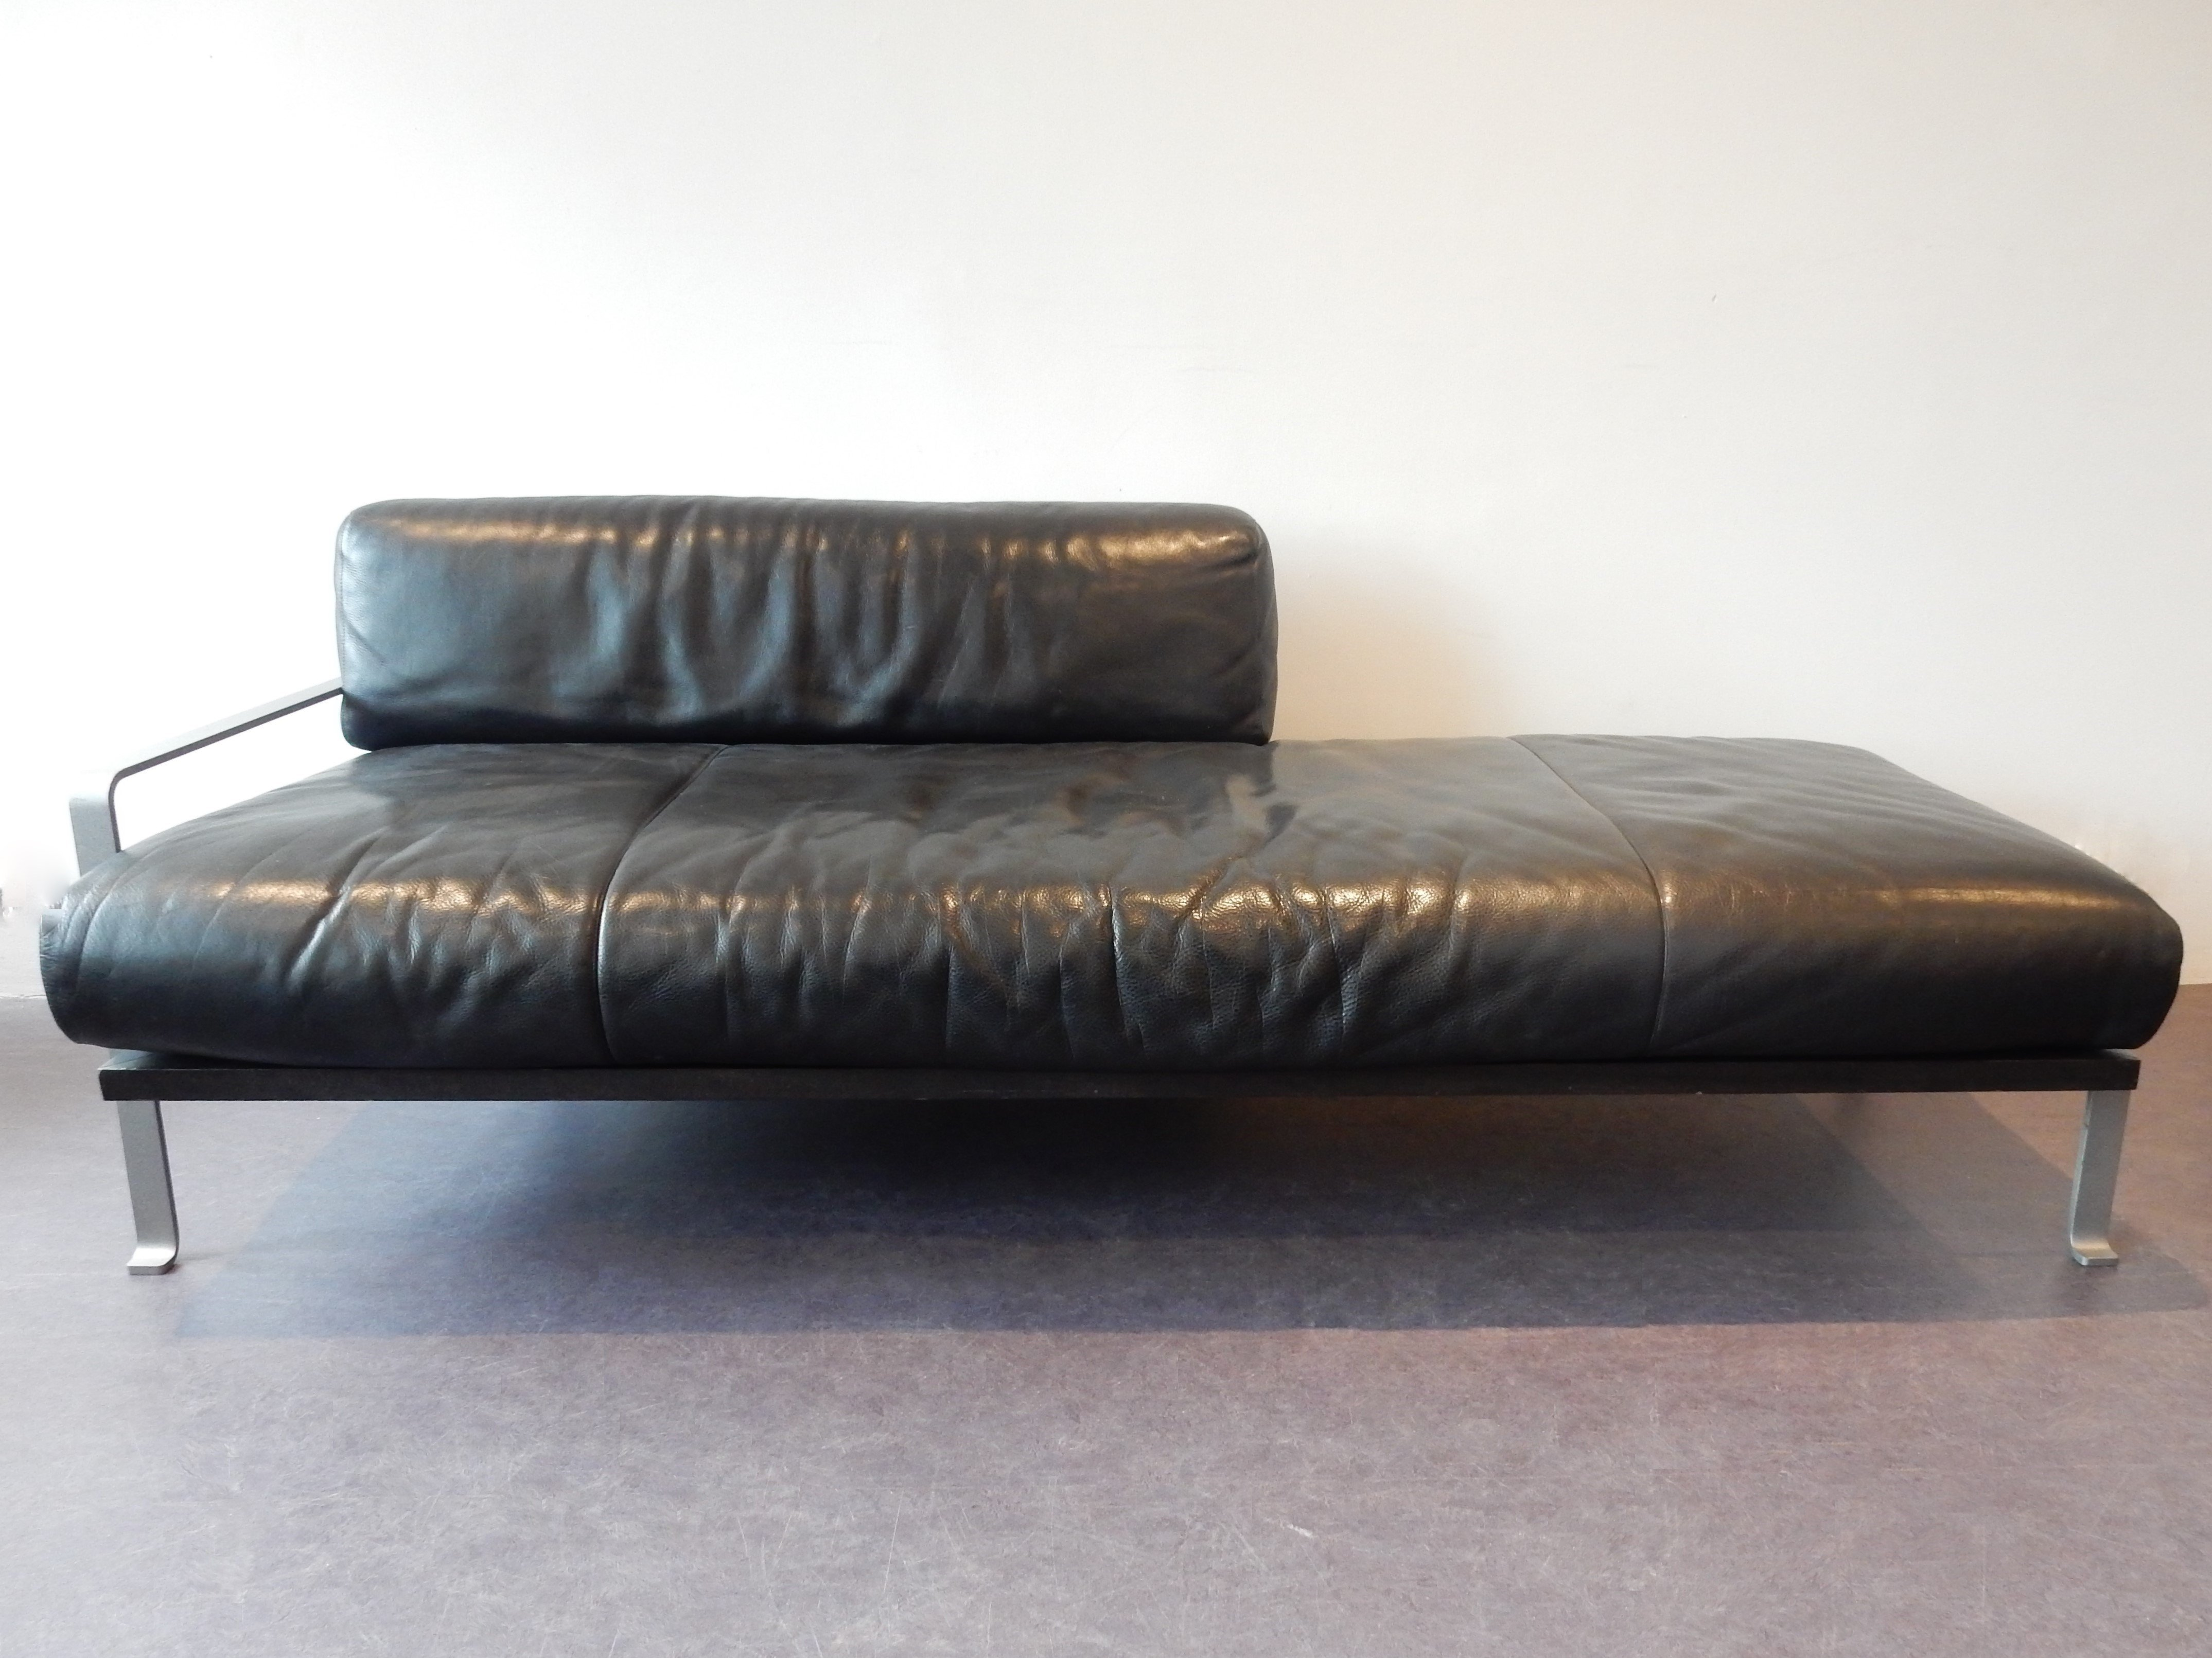 - Unique Black Leather Chaise Longue Or Daybed By Matteo Grassi